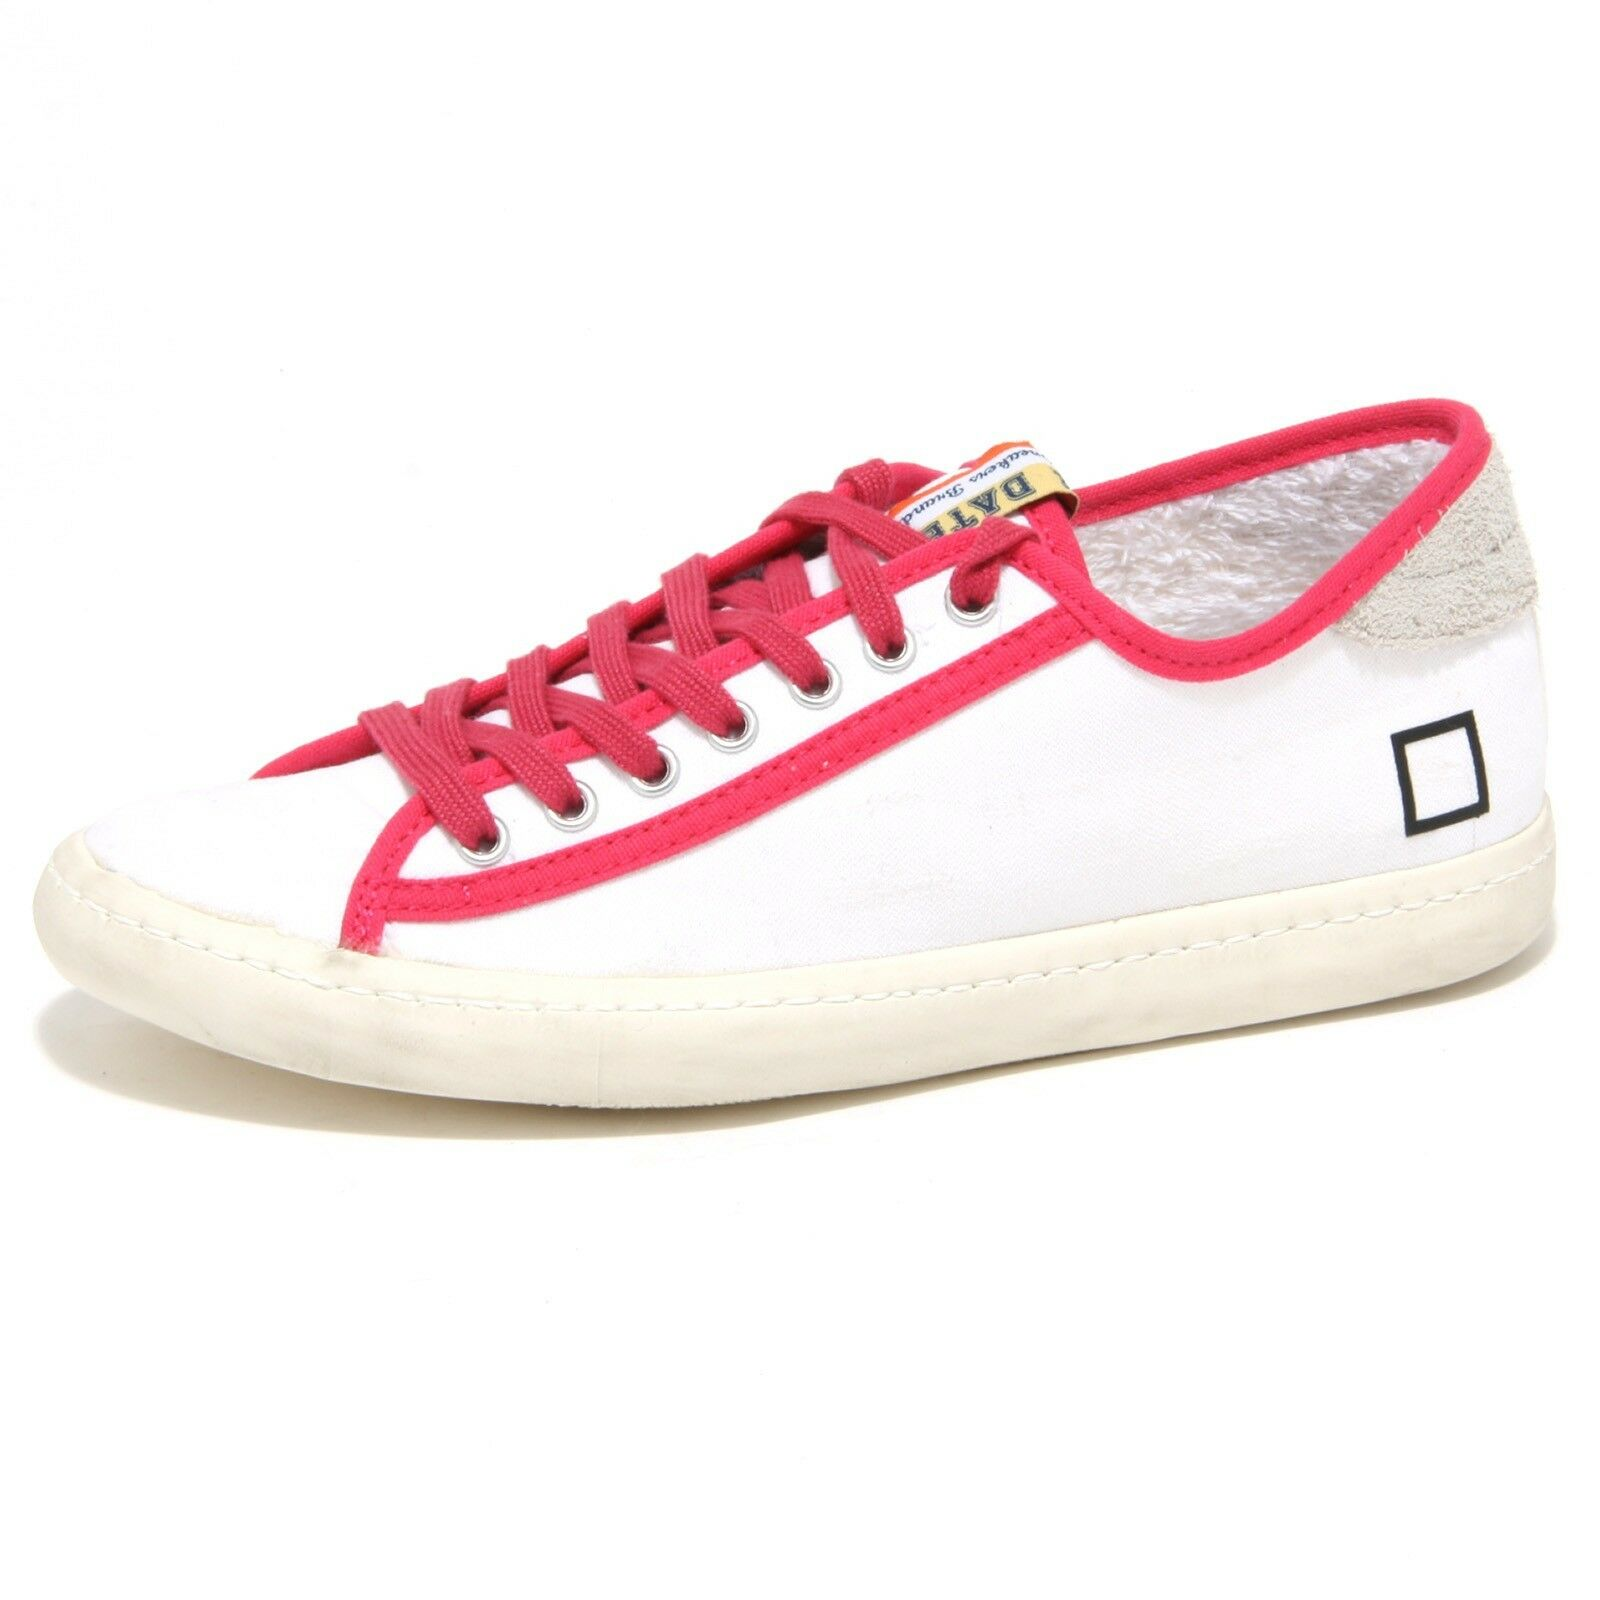 Zapatos promocionales para hombres y mujeres 0806O sneakers donna D.A.T.E. TENDER bianco/fuxia shoes woman